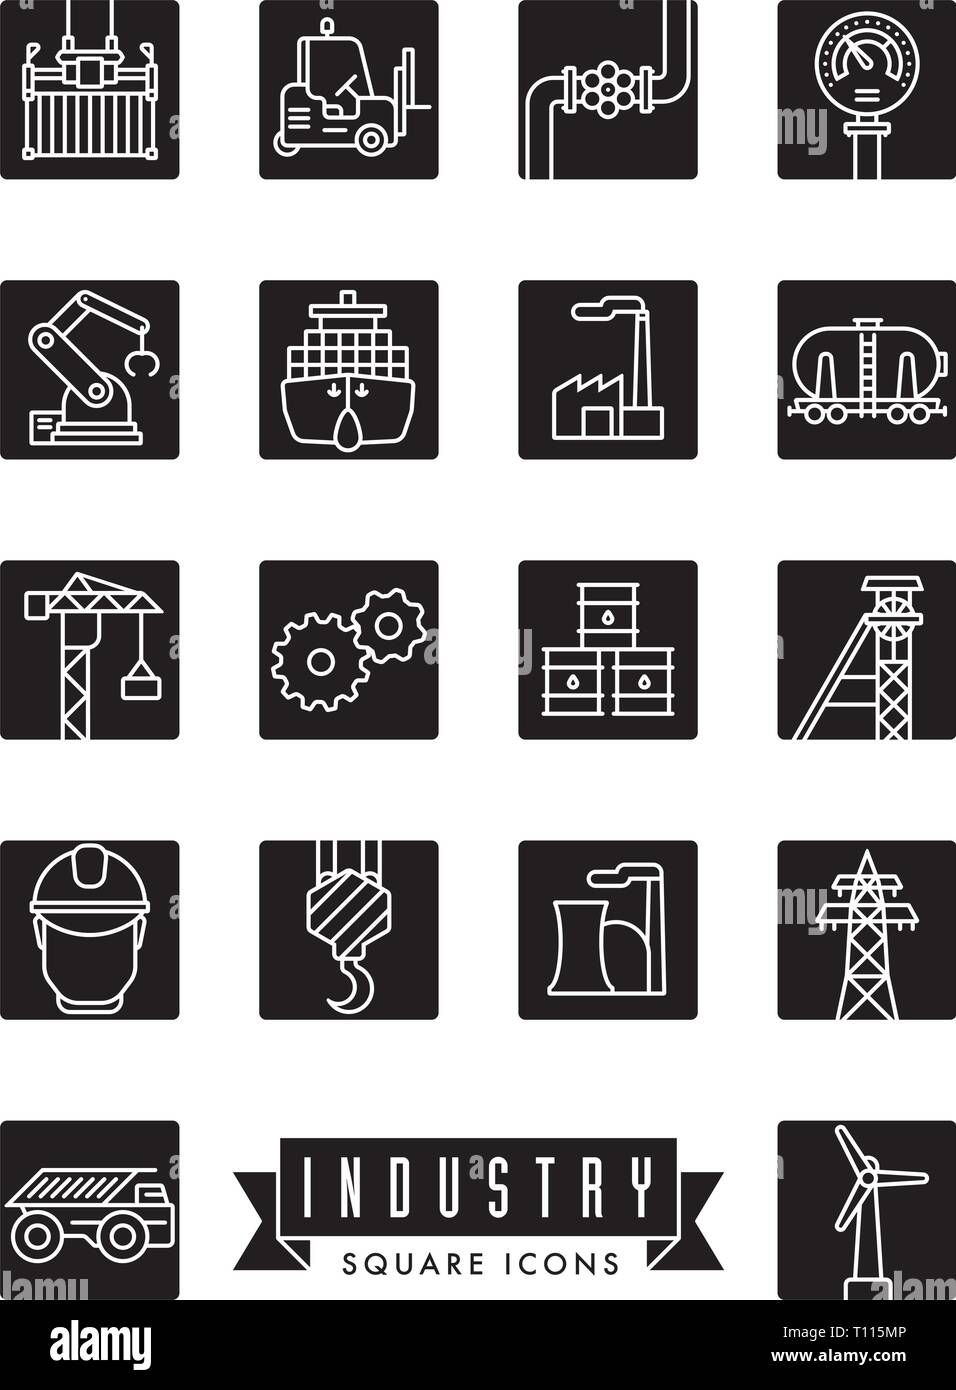 Collection of industry themed square black vector line icons - Stock Vector